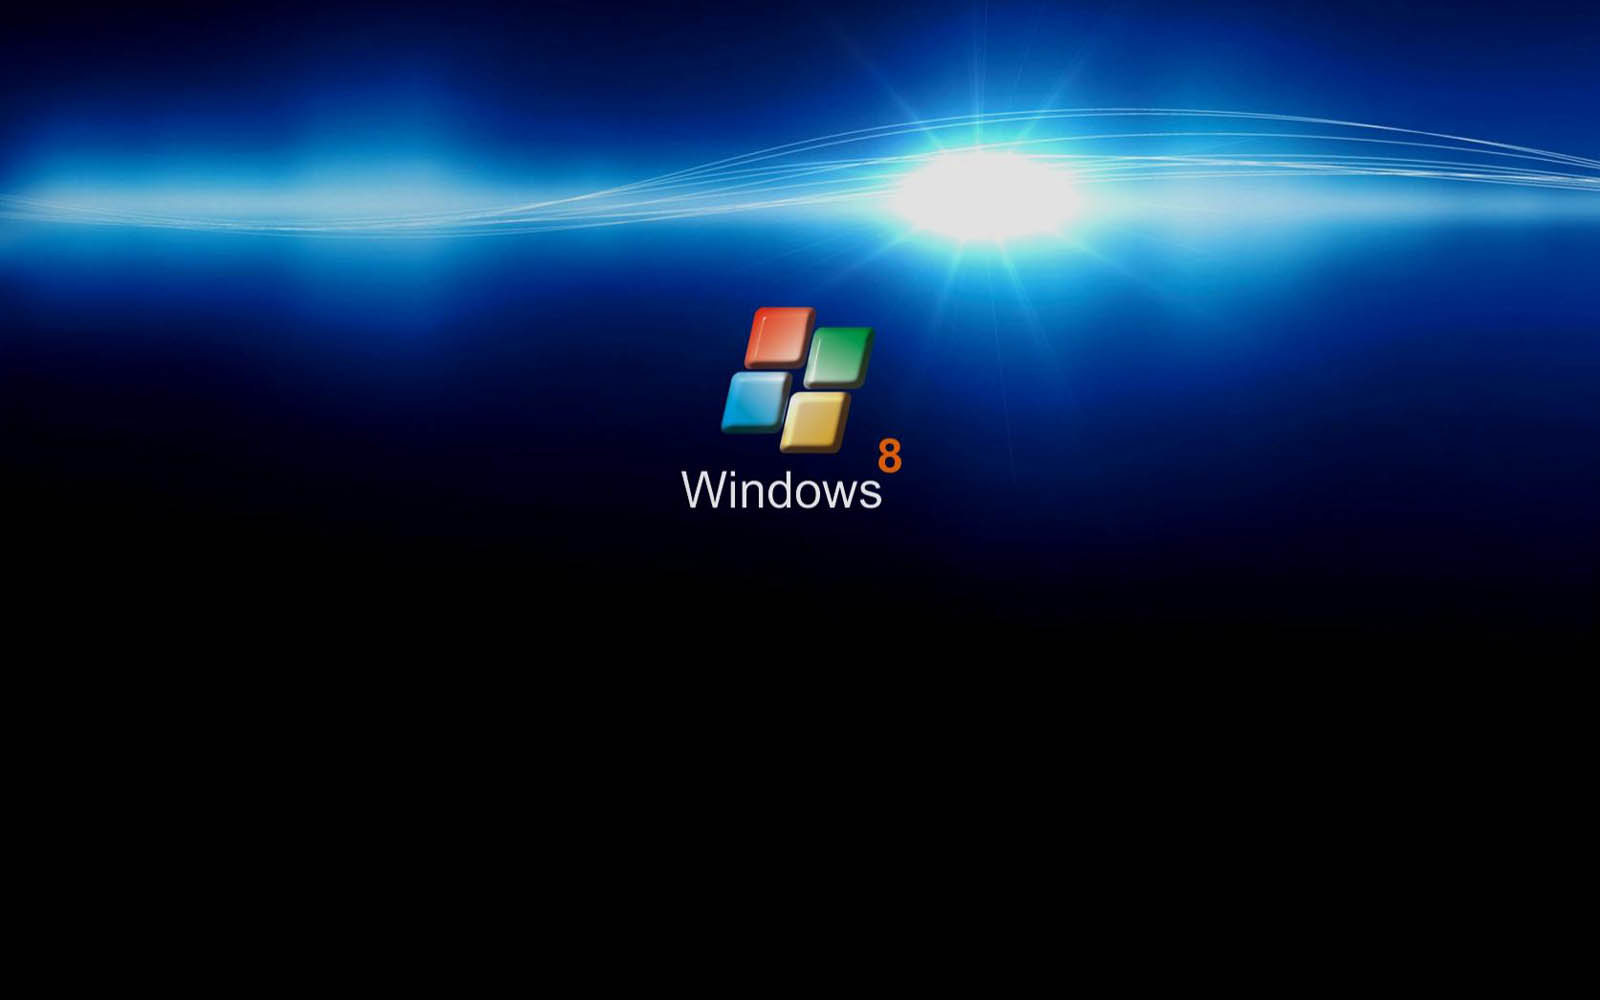 wallpapers for windows 8 laptop - photo #4